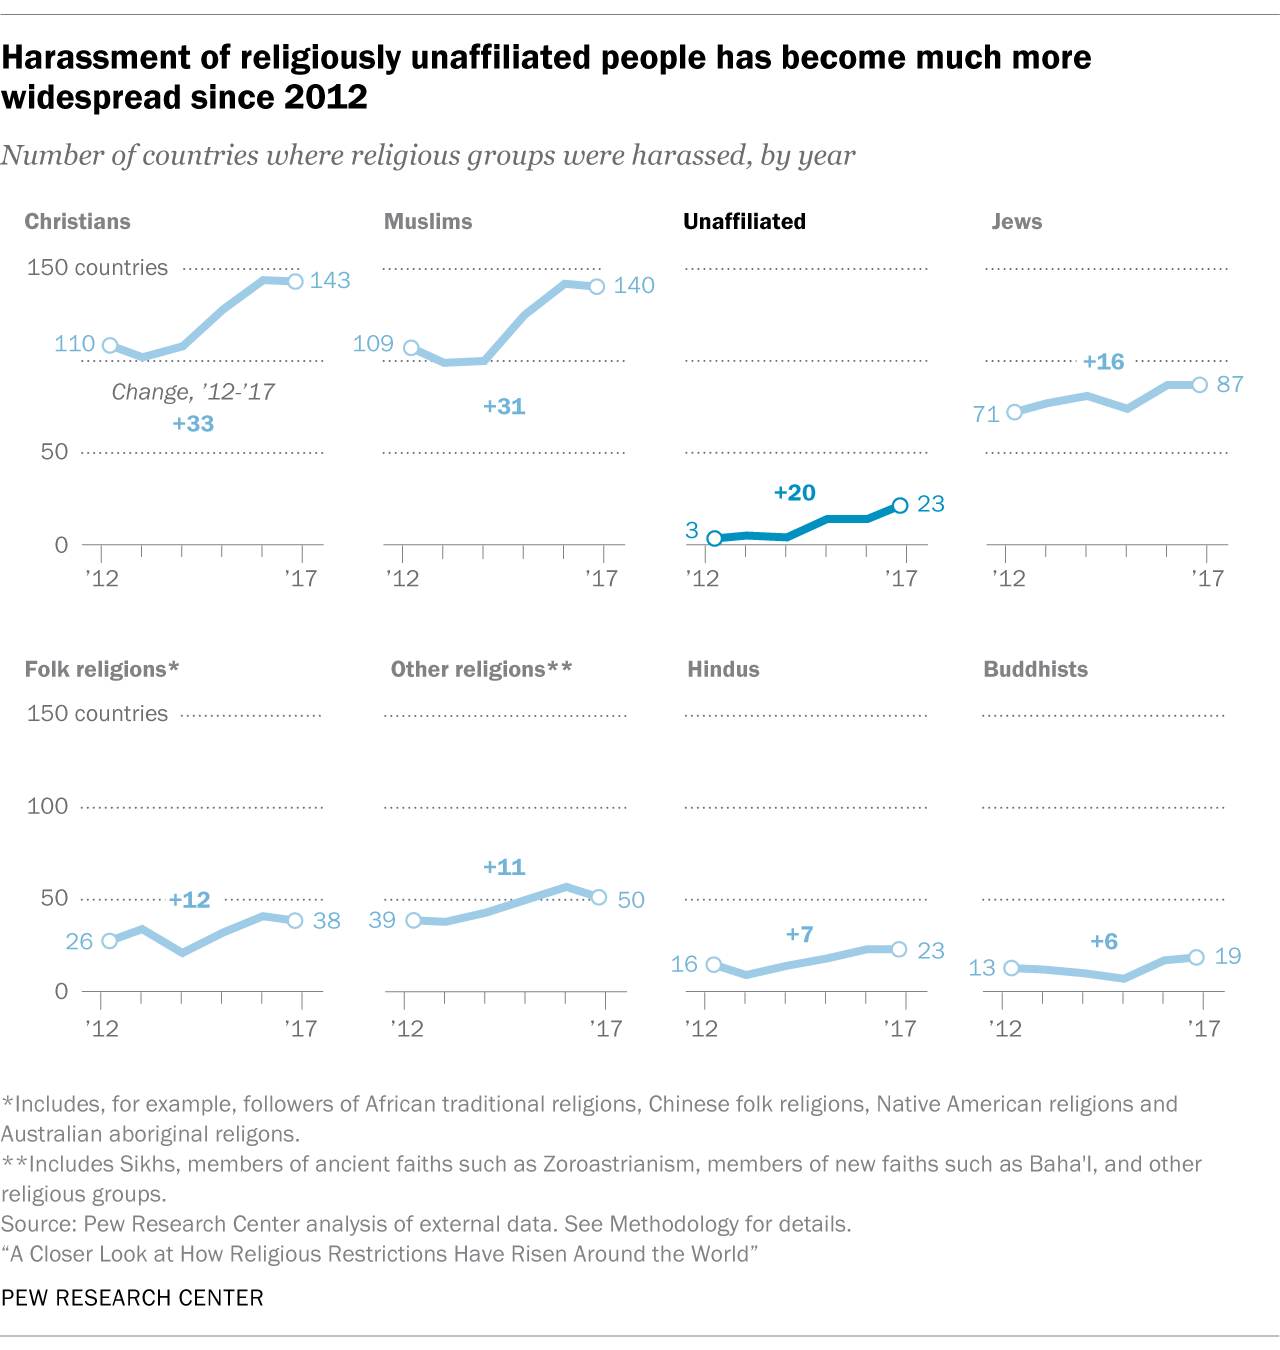 Harassment of religiously unaffiliated people has become much more widespread since 2012